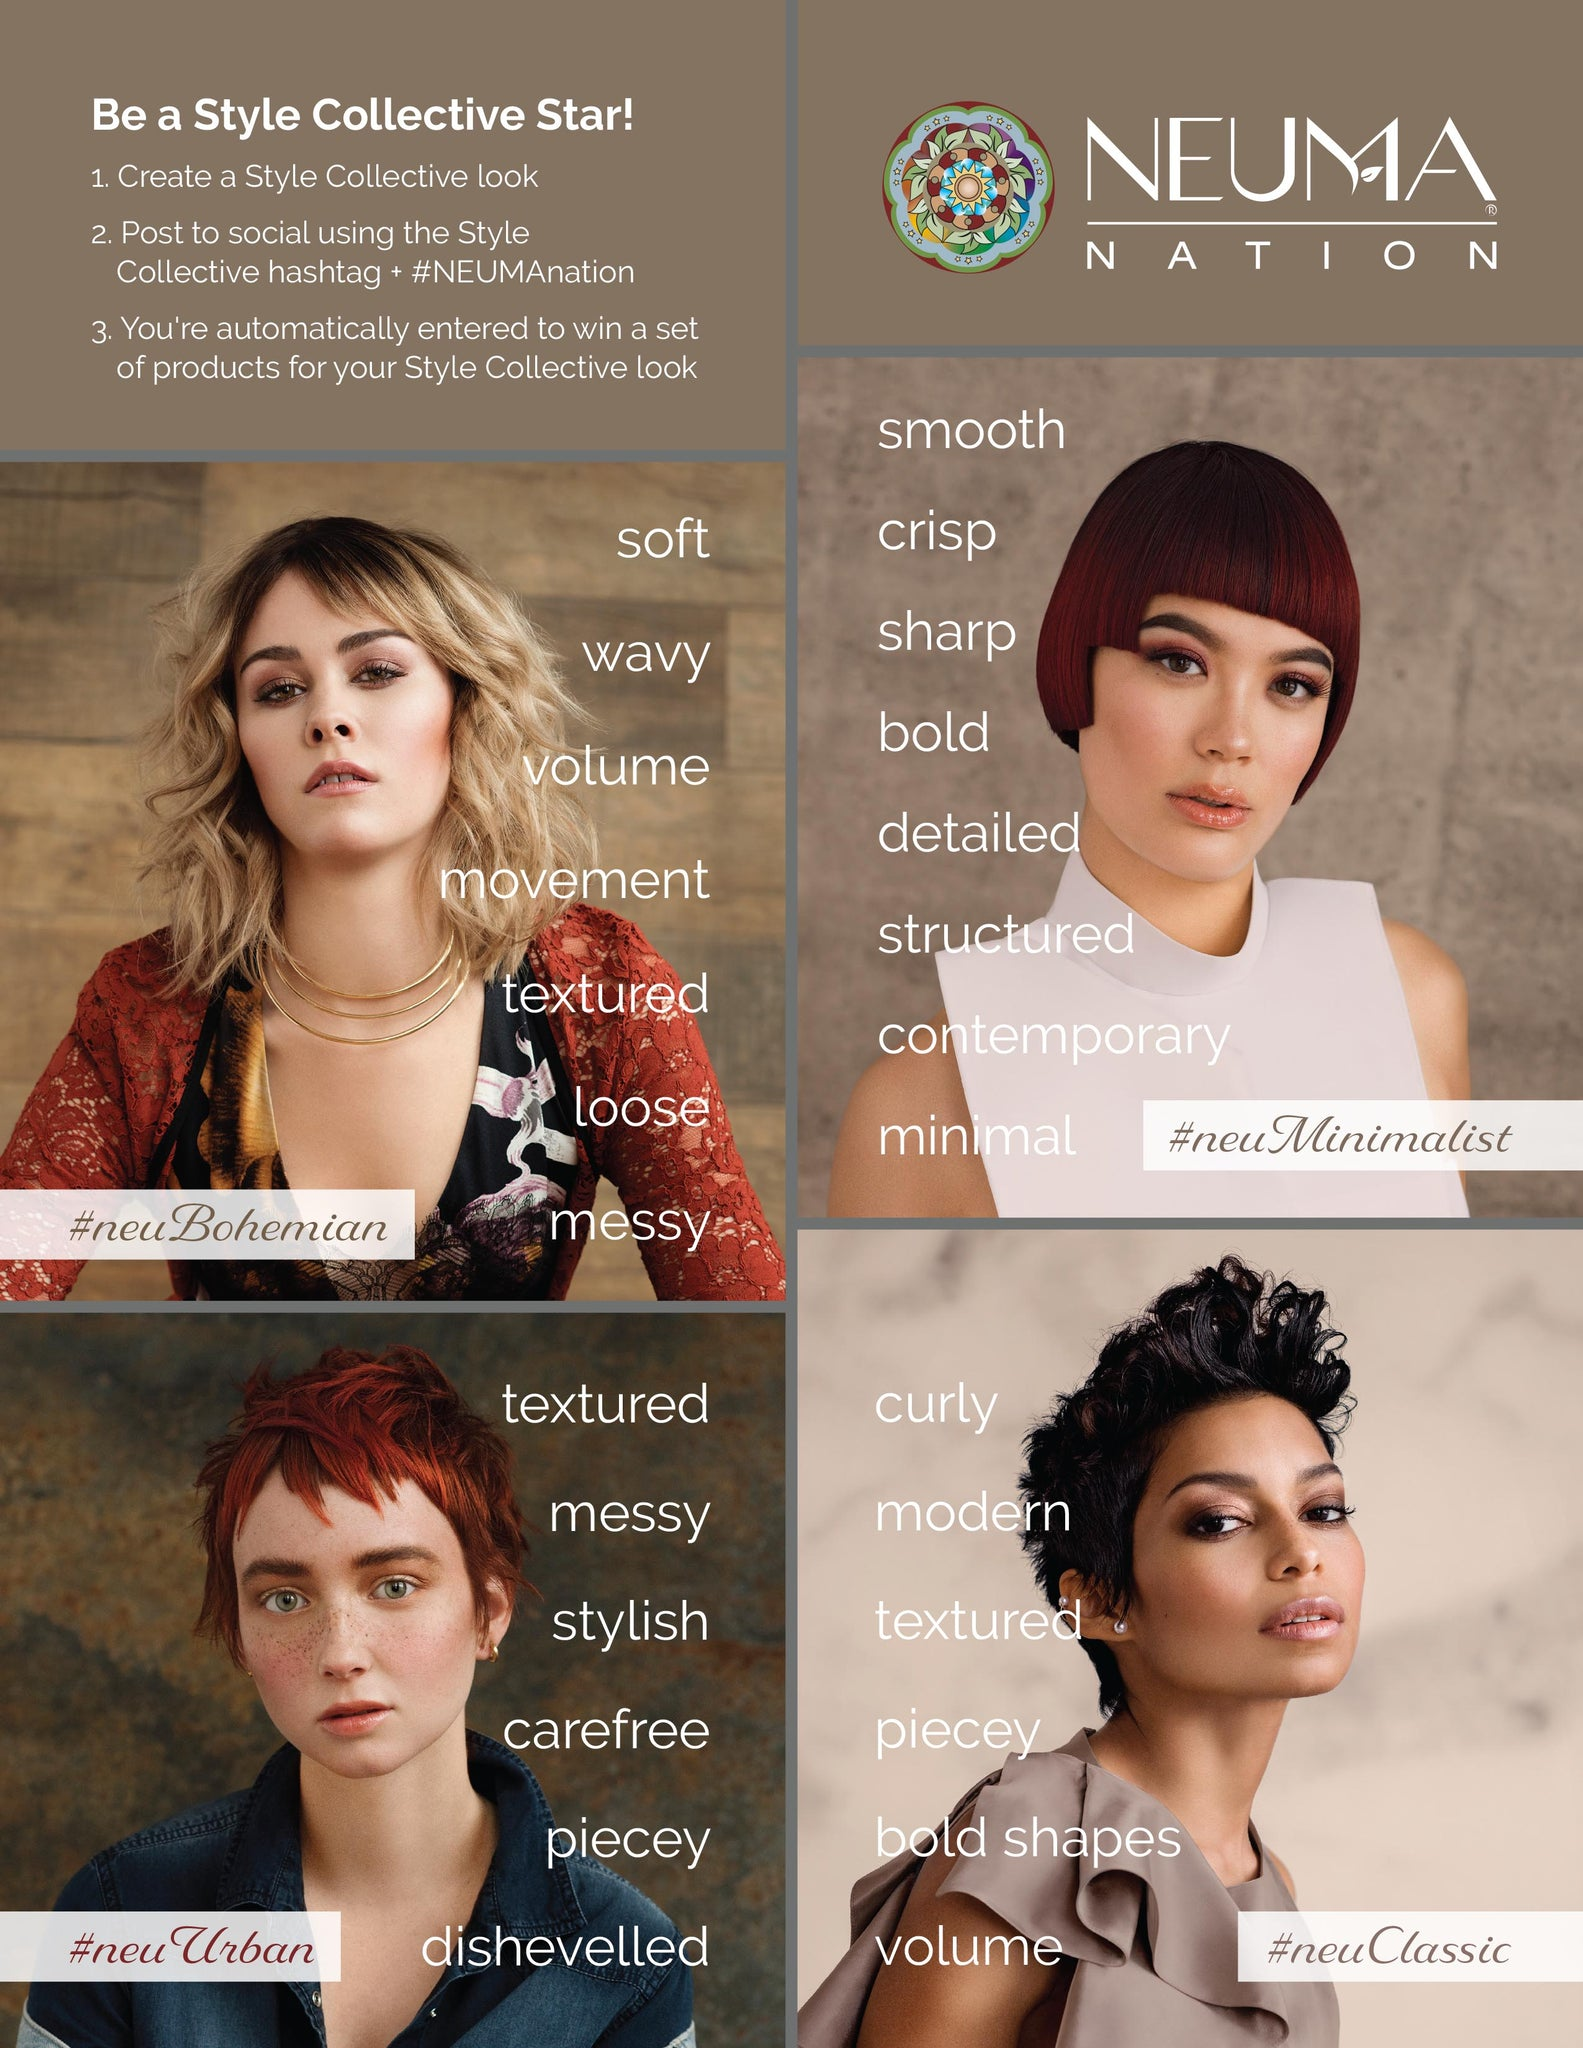 NEUMA nation hair style contest flier